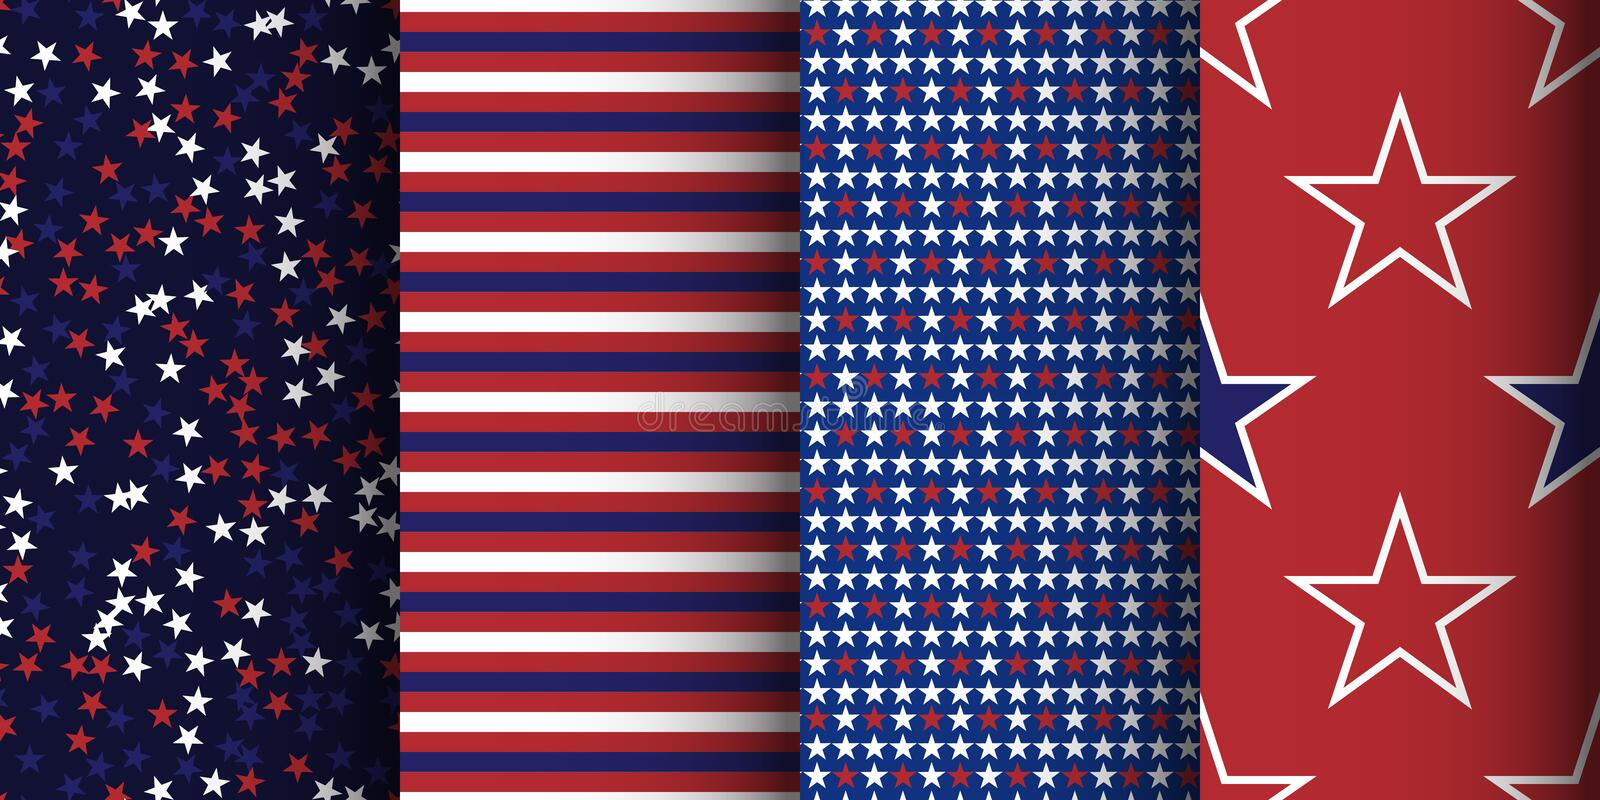 American patriotic striped and starry seamless patterns set. Fabric, wrapping and apparel background stock illustration